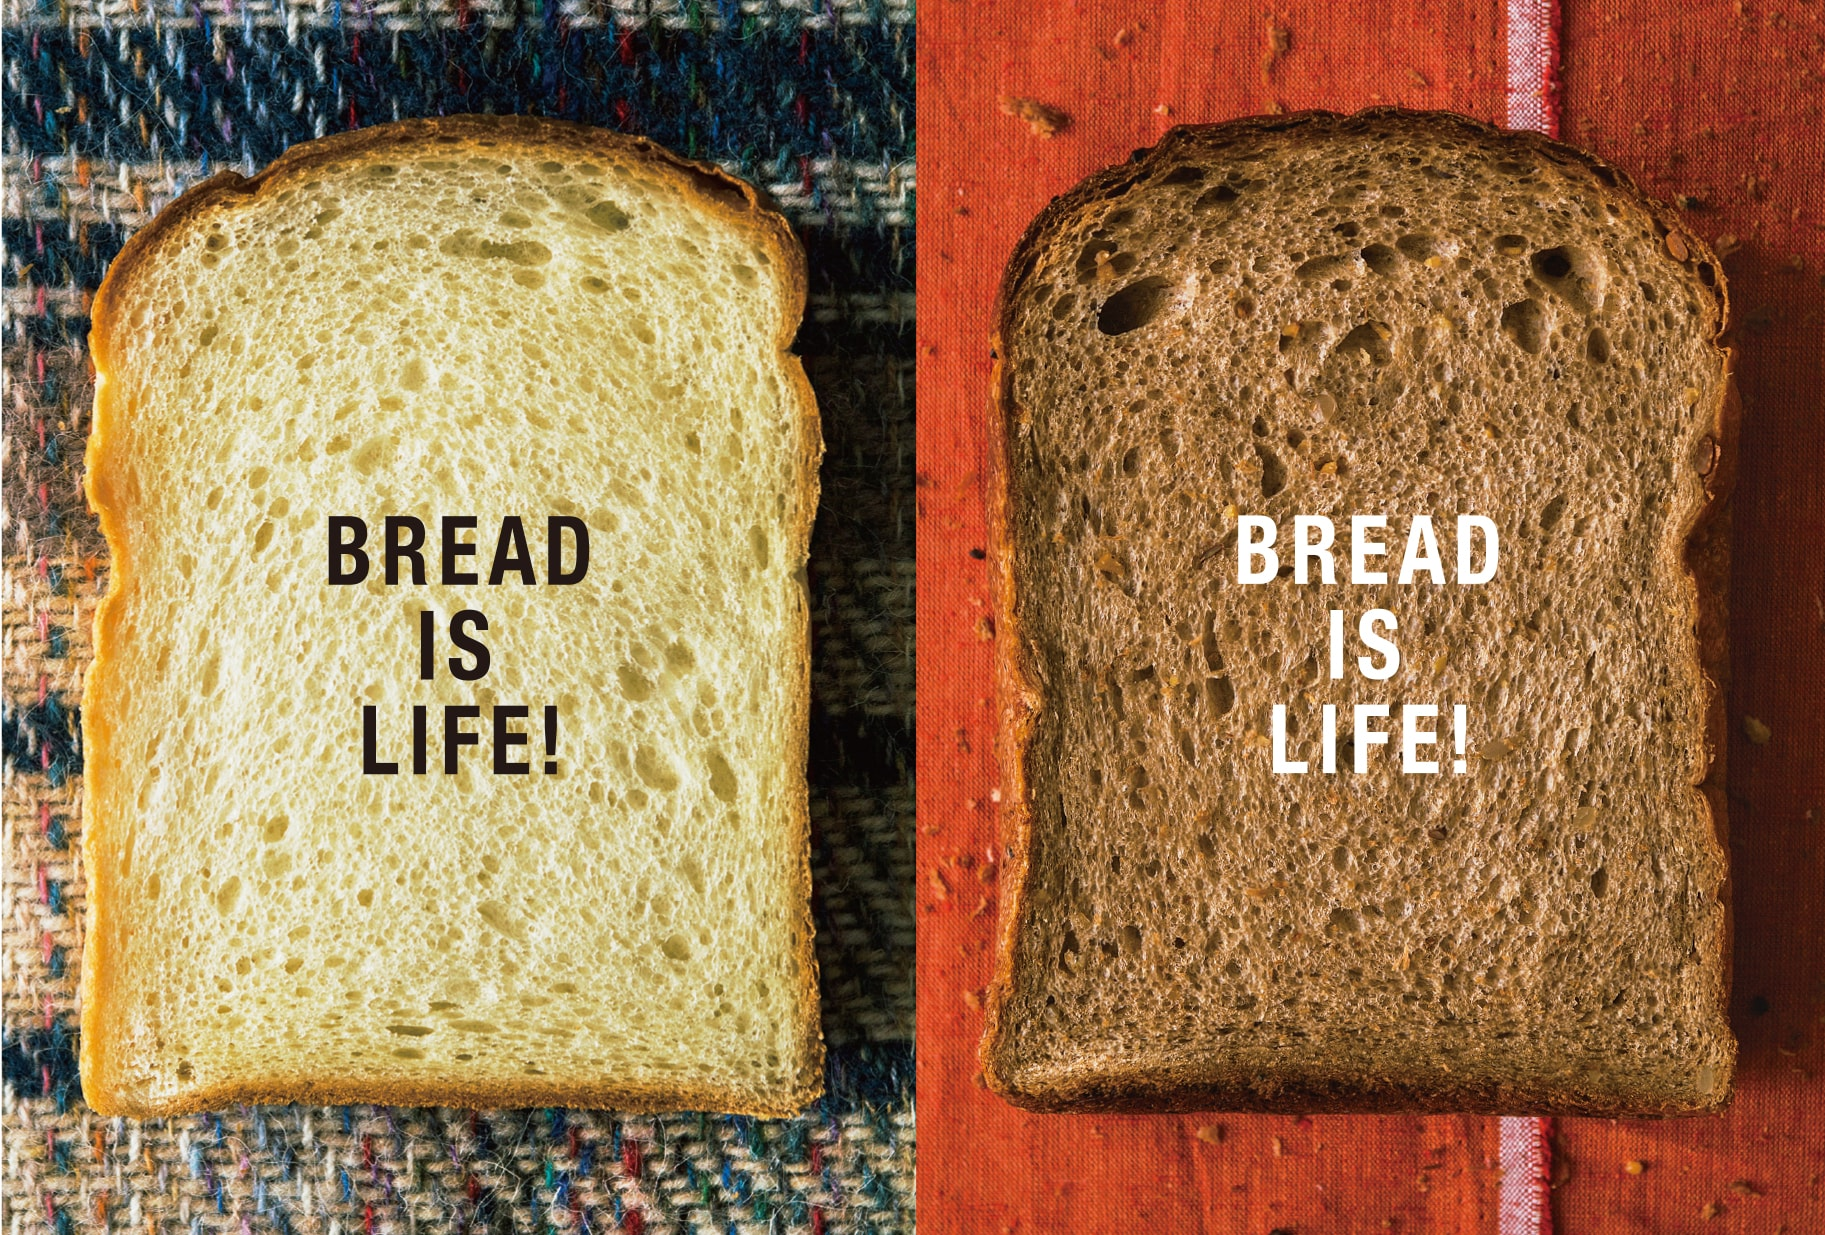 BREAD IS LIFE!